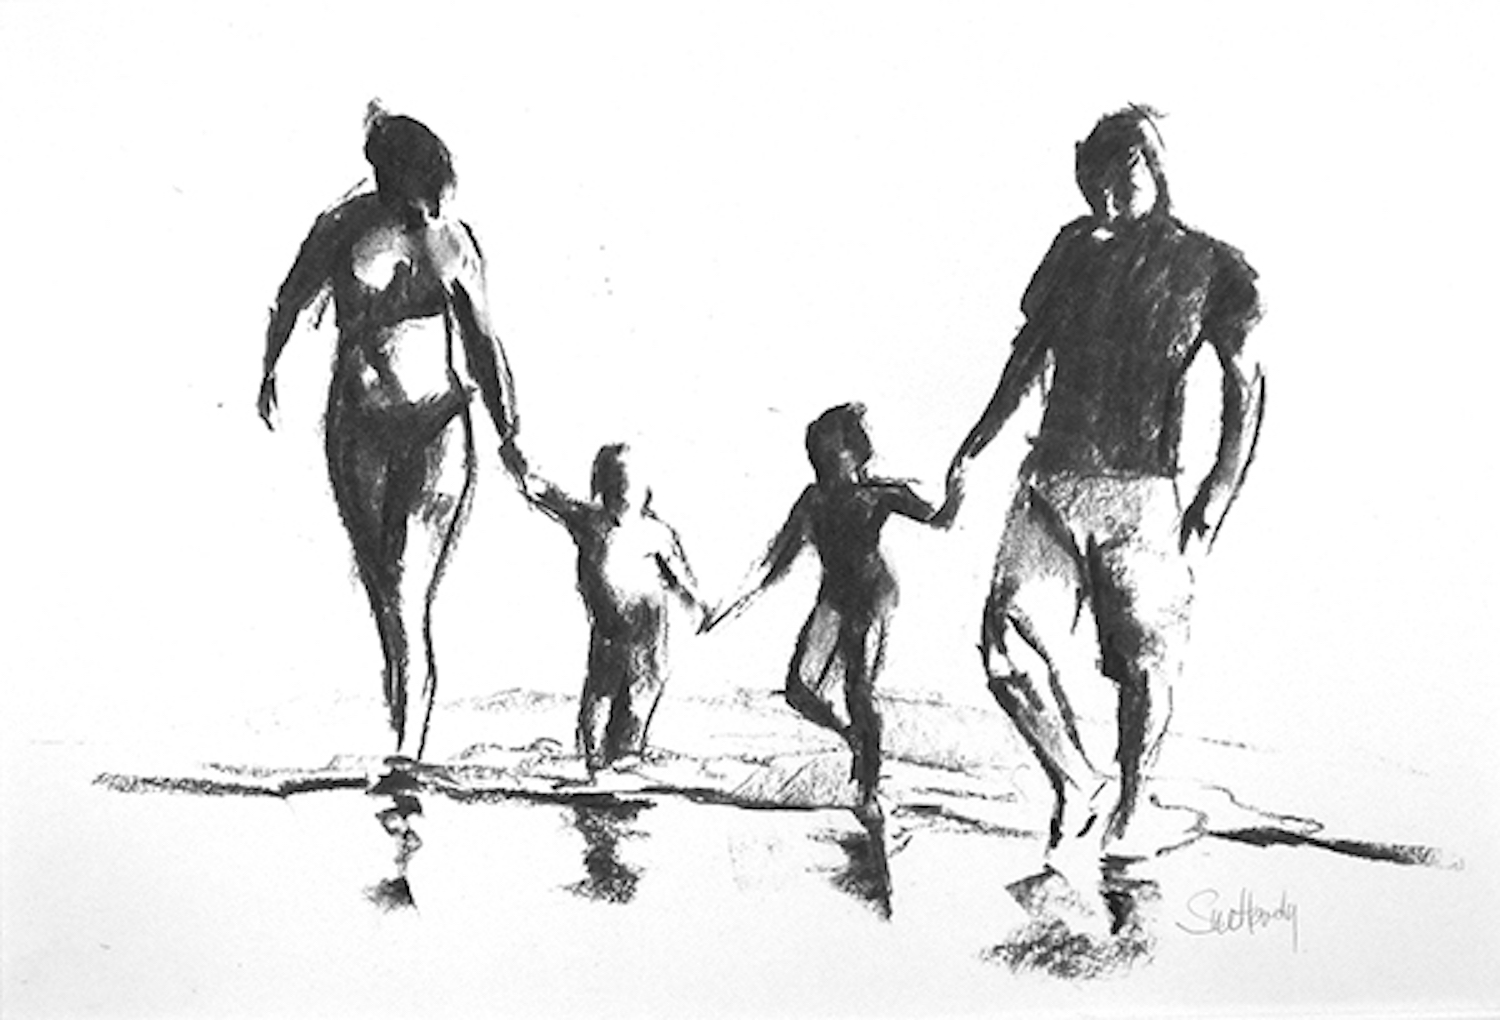 FAMILY IN THE SHALLOWS